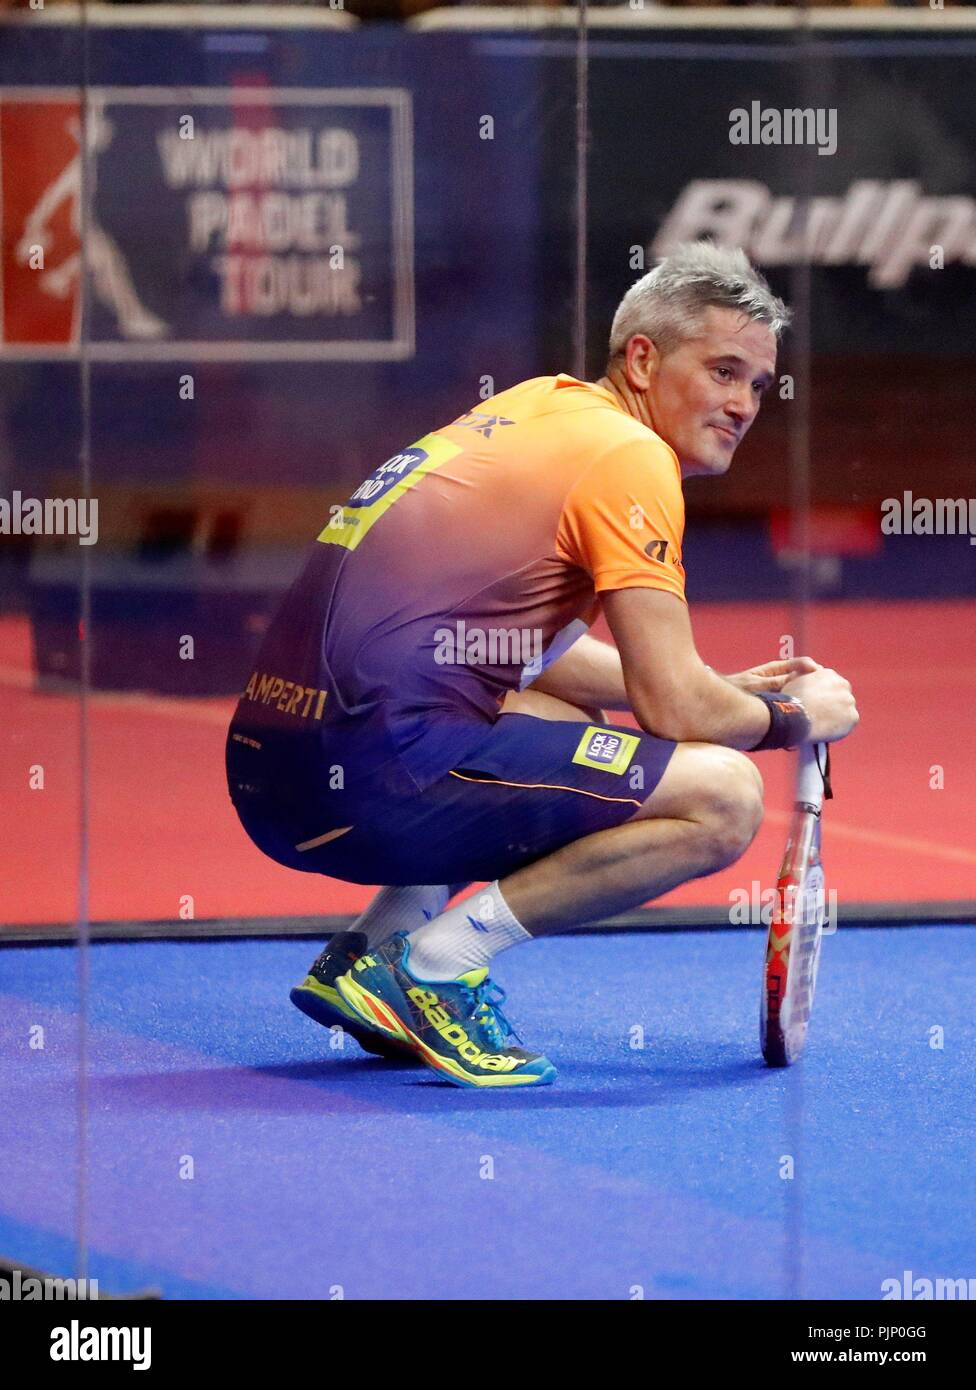 Miguel Lamperti And Juan Mieres Out Of Frame In Action Against